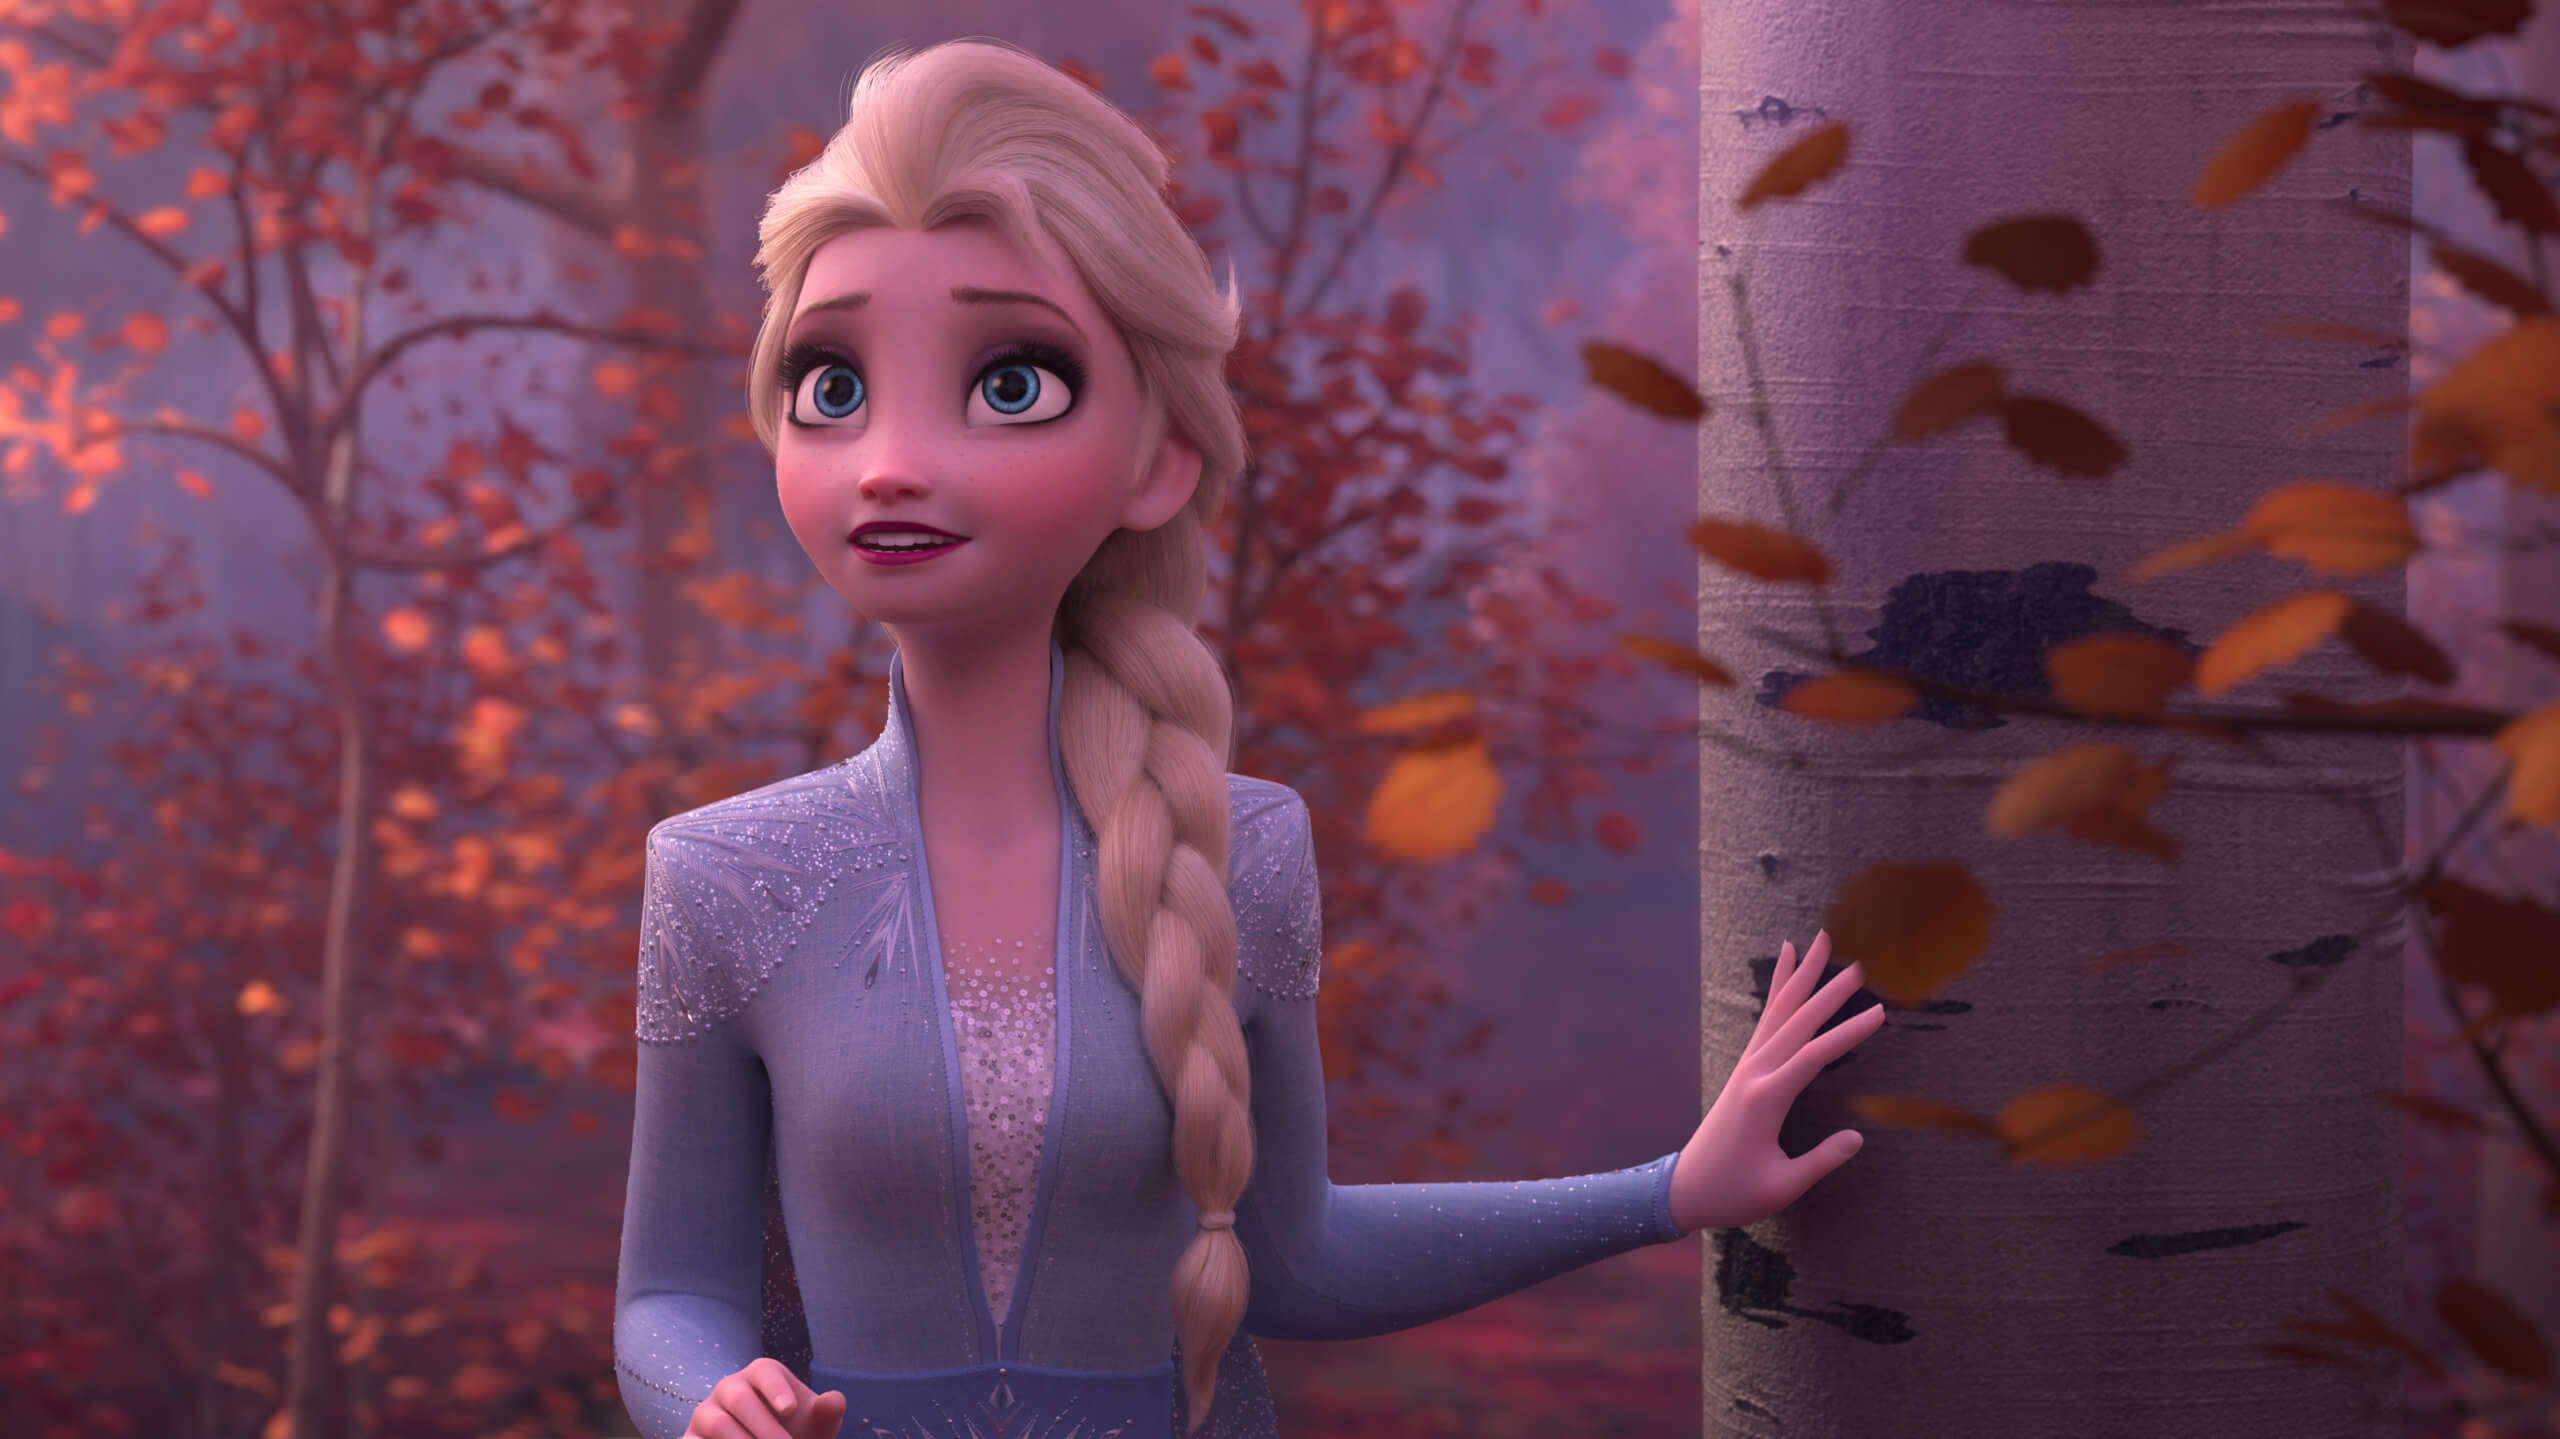 frozen-ii-2019-movie-desney